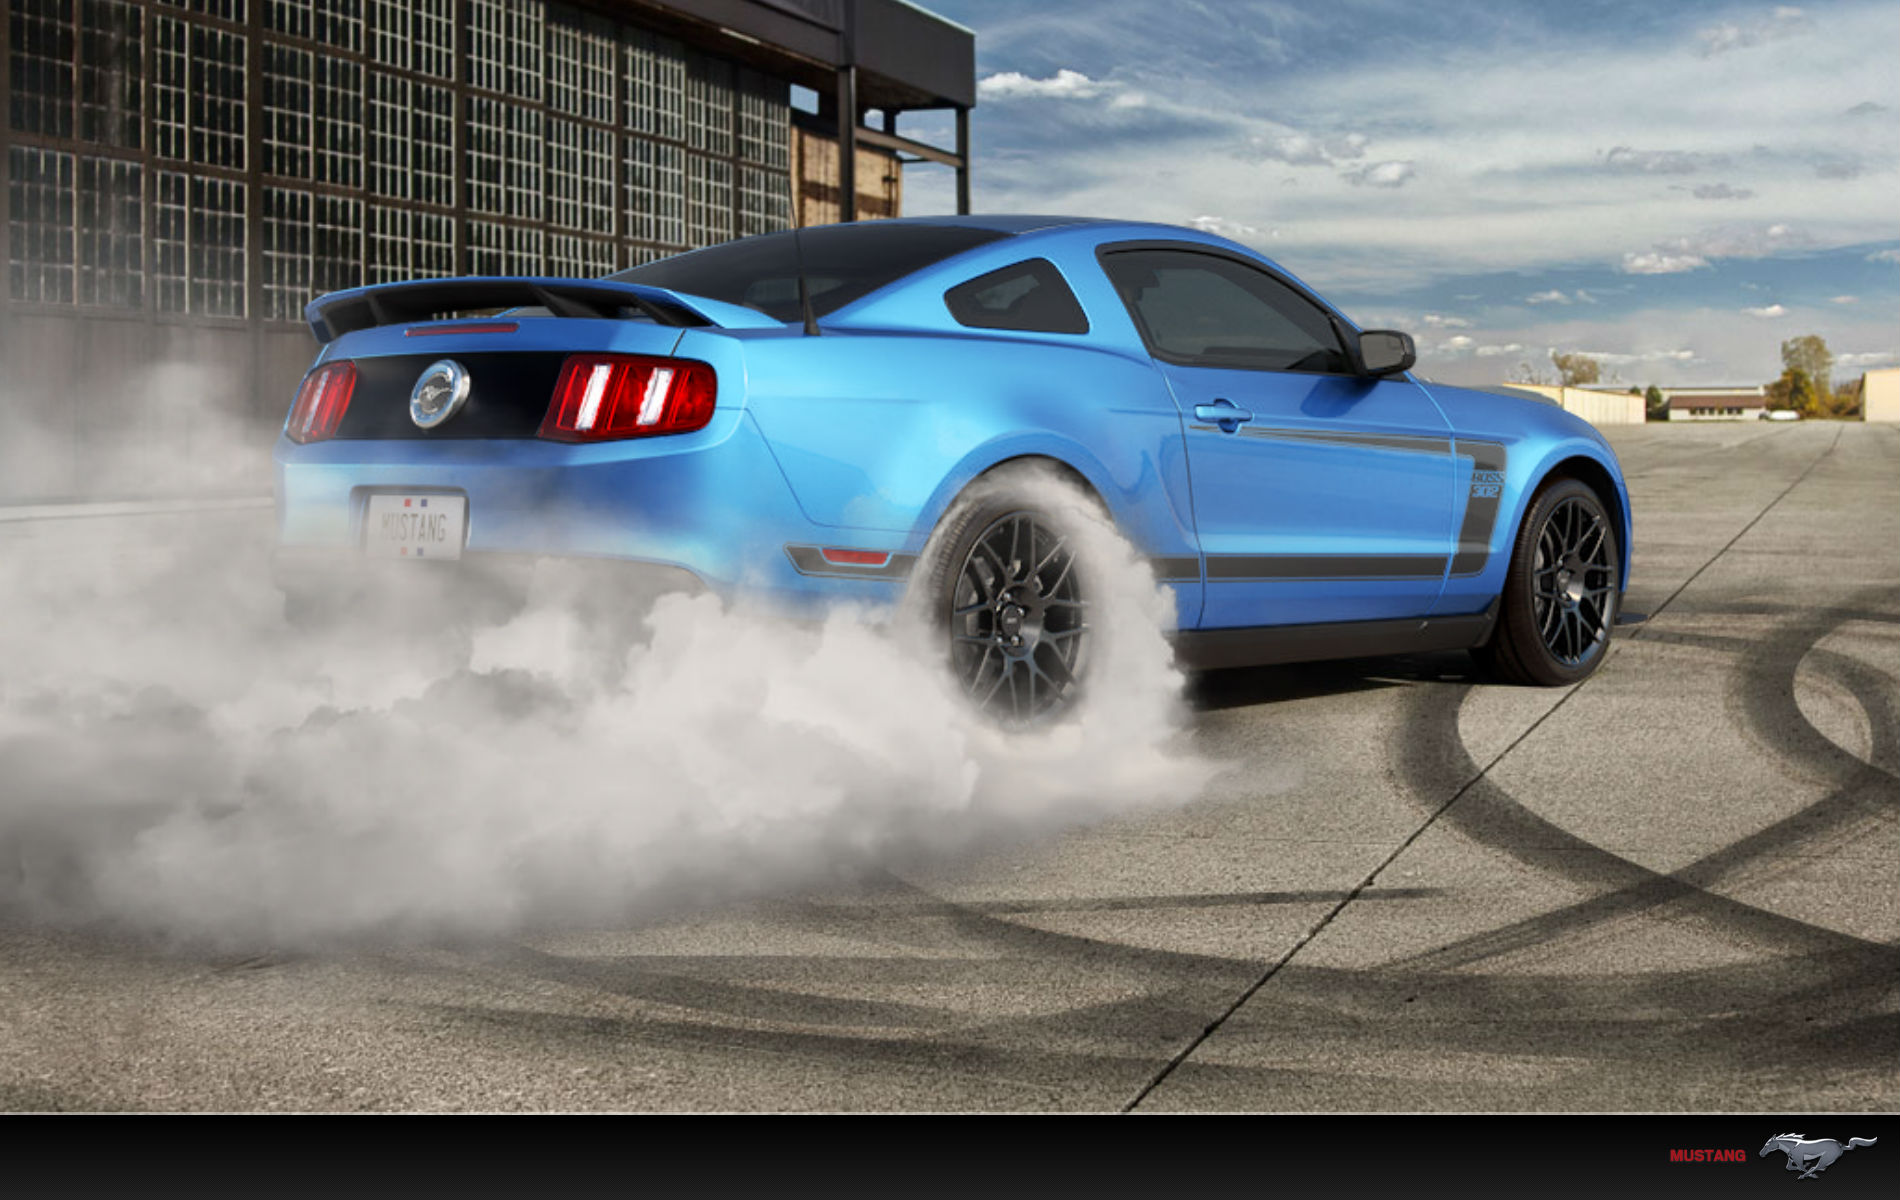 Mustang Burnout Wallpaper Wallpapersafari